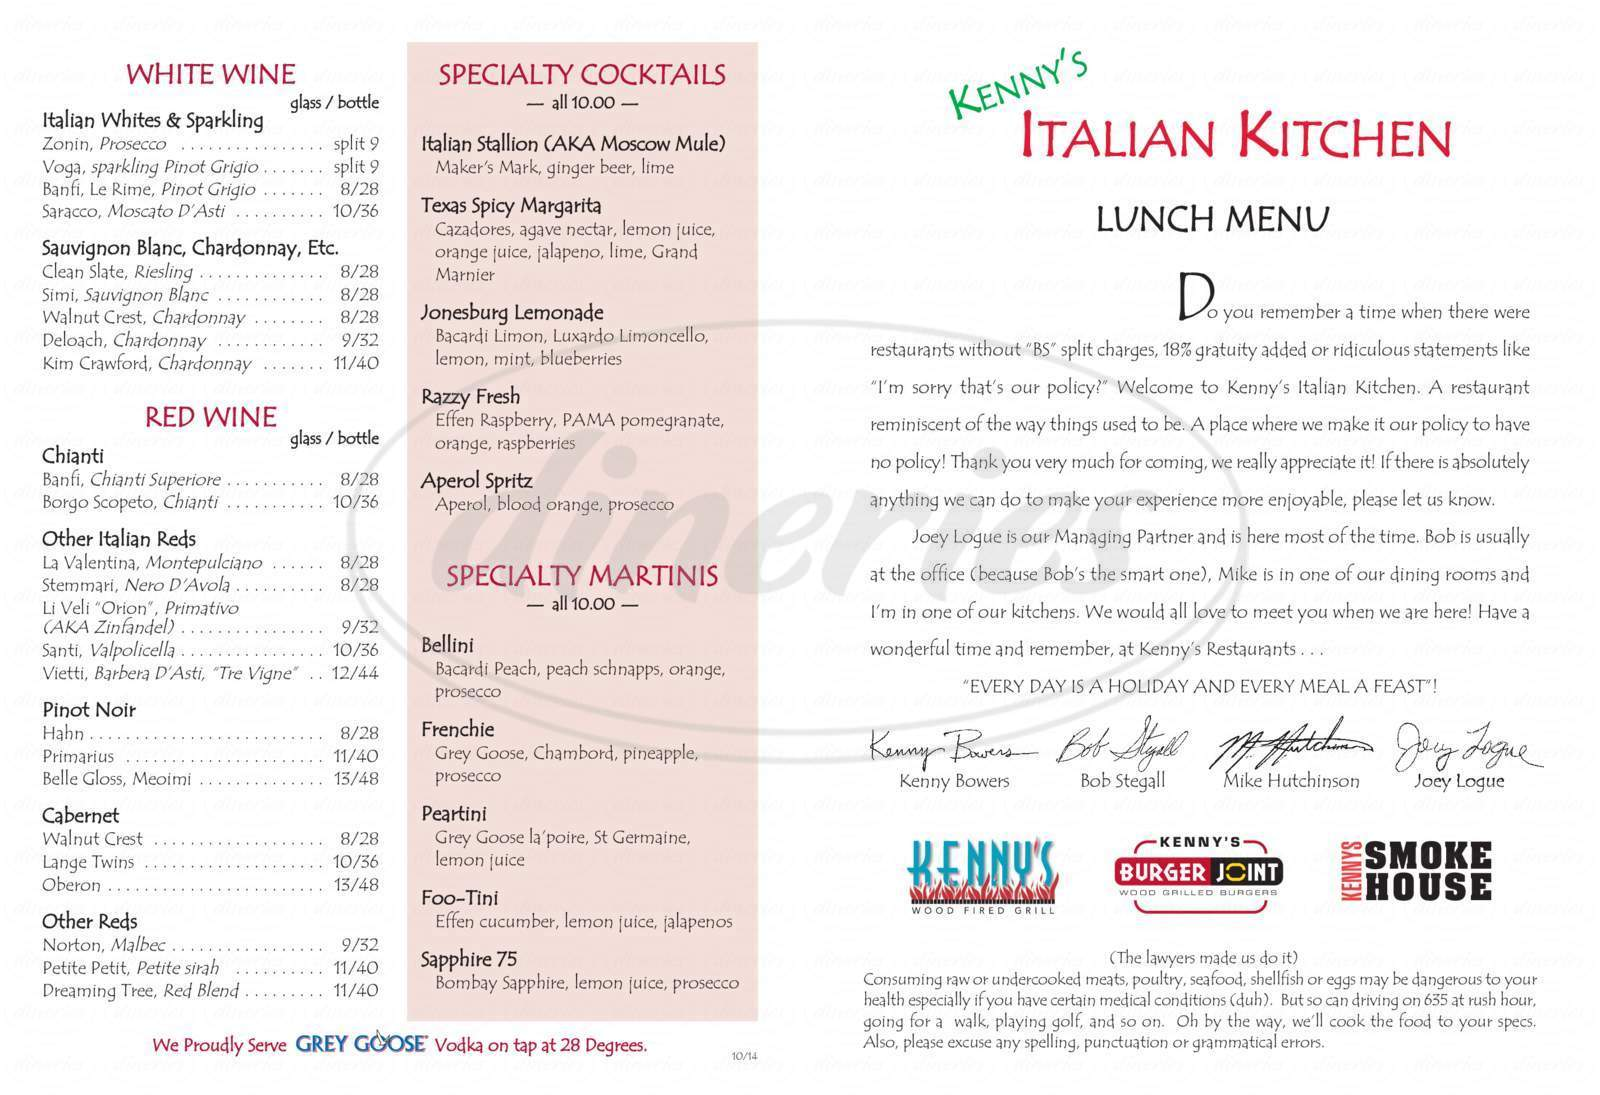 menu for Kenny's Italian Kitchen